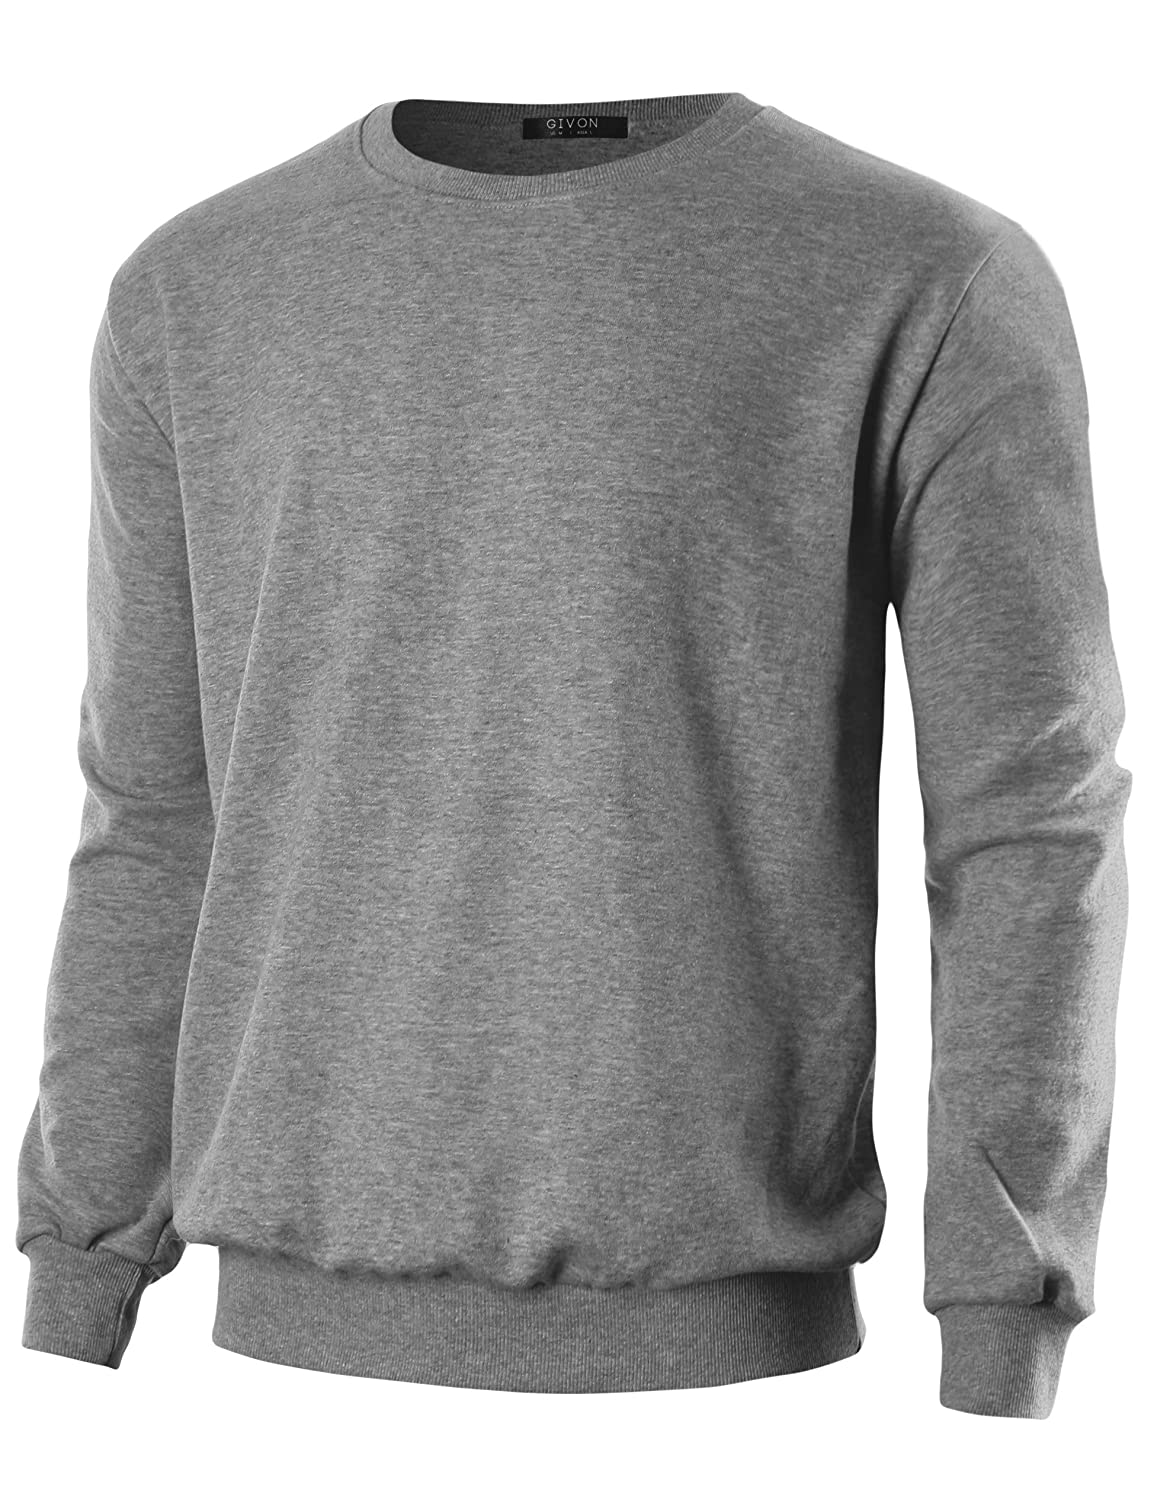 GIVON Mens Lightweight Crew Neck Sweatshirt